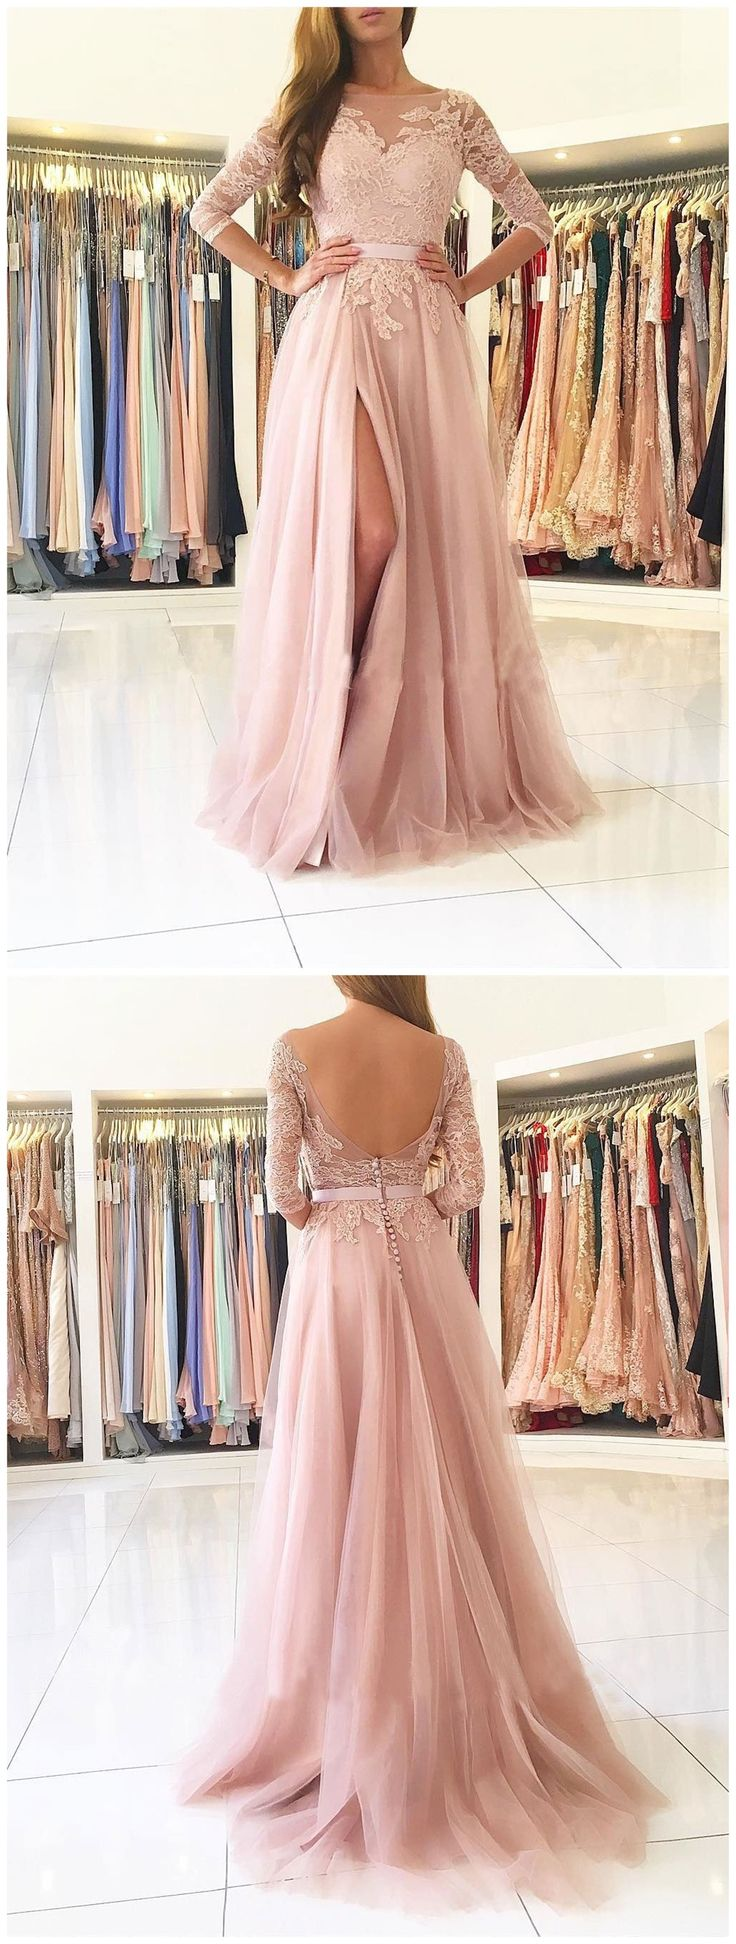 Sexy Split Blush Pink Long Sleeve Lace Evening Prom Dresses, Sexy Party Prom Dresses, Custom Long Prom Dresses, Cheap Formal Prom Dresses, 17141